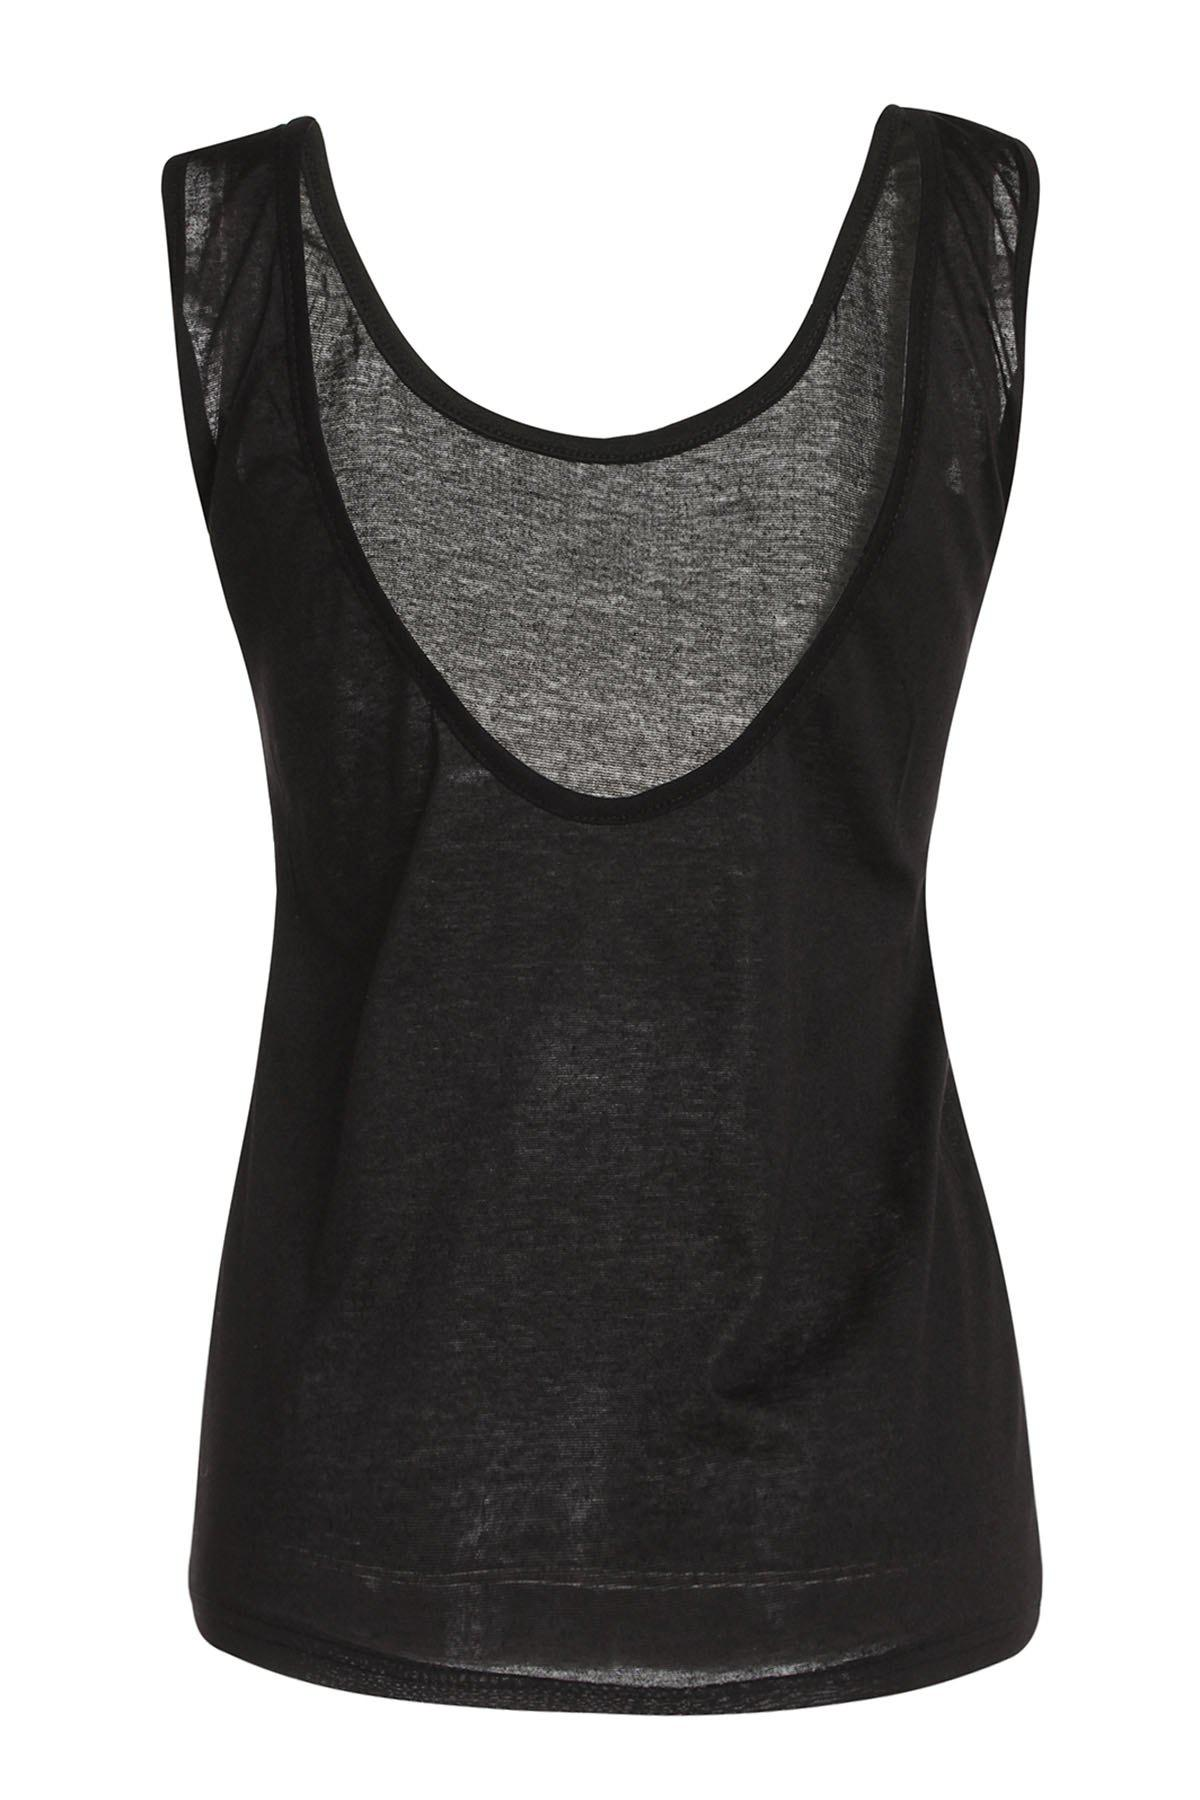 Stylish Women's Scoop Neck Backless Tank Top